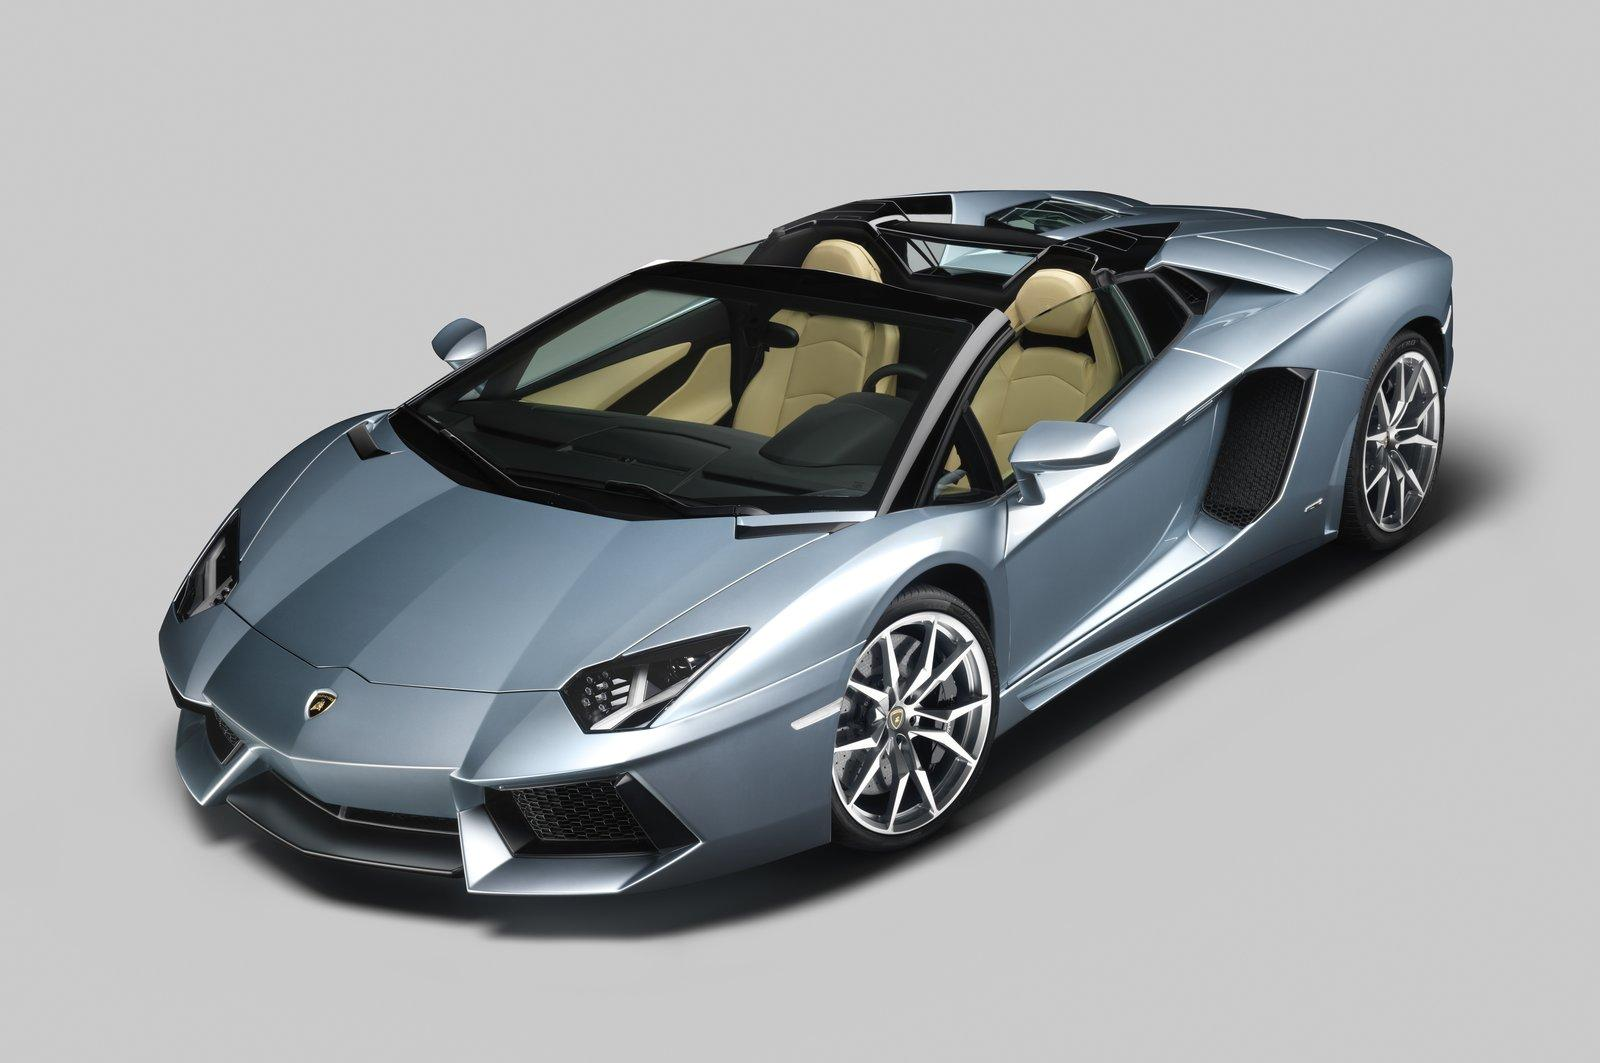 2013 lamborghini aventador lp700 4 roadster revealed autoevolution. Black Bedroom Furniture Sets. Home Design Ideas